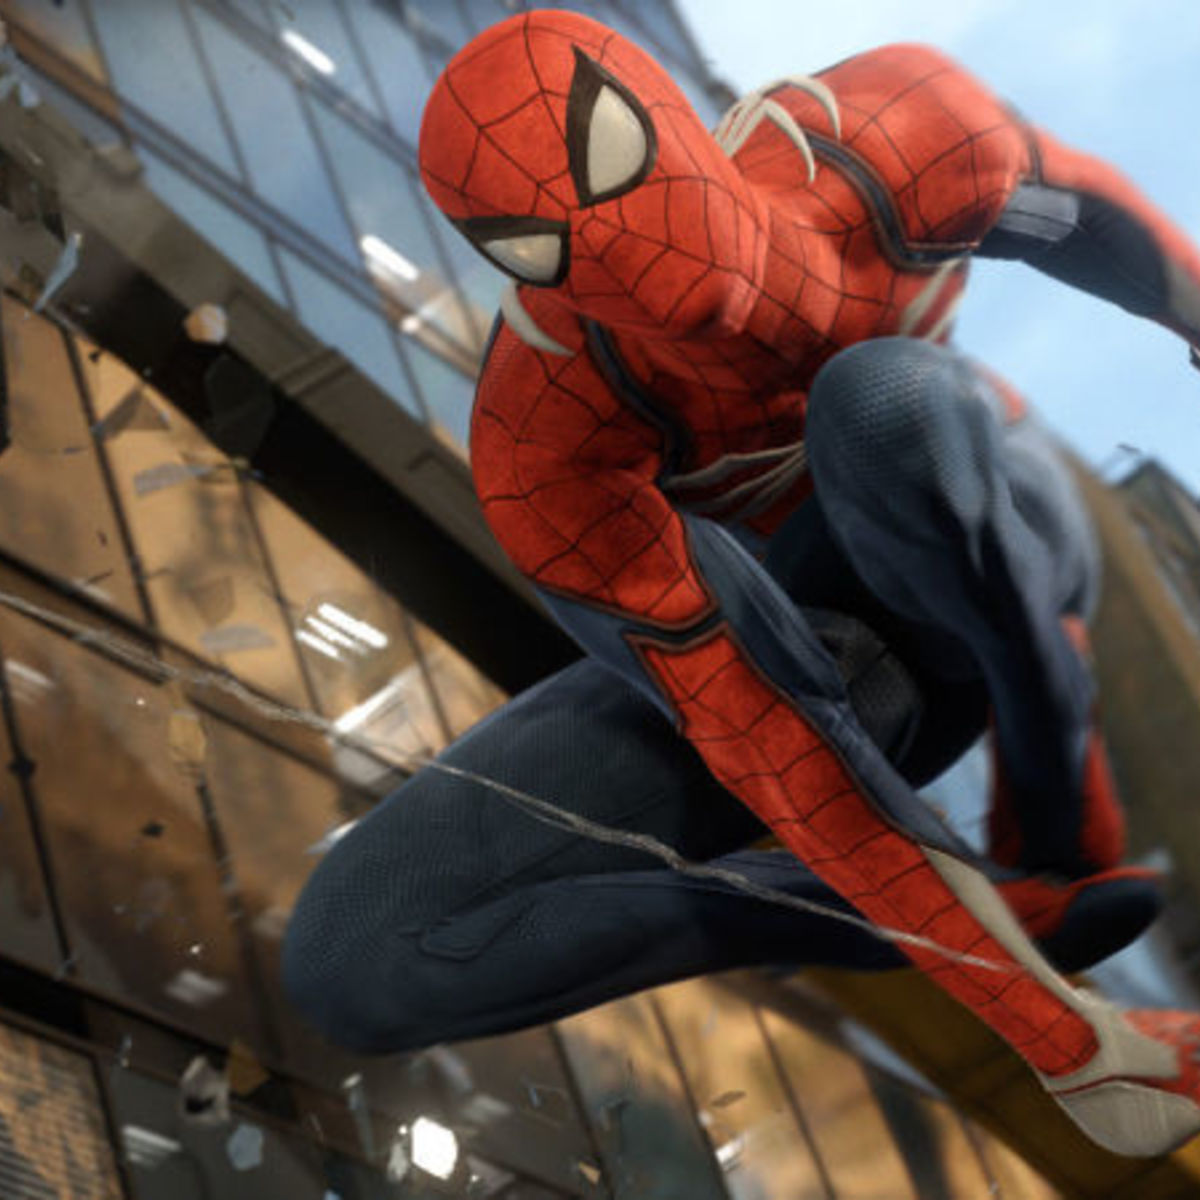 Spider-Man - PlayStation 4 shot